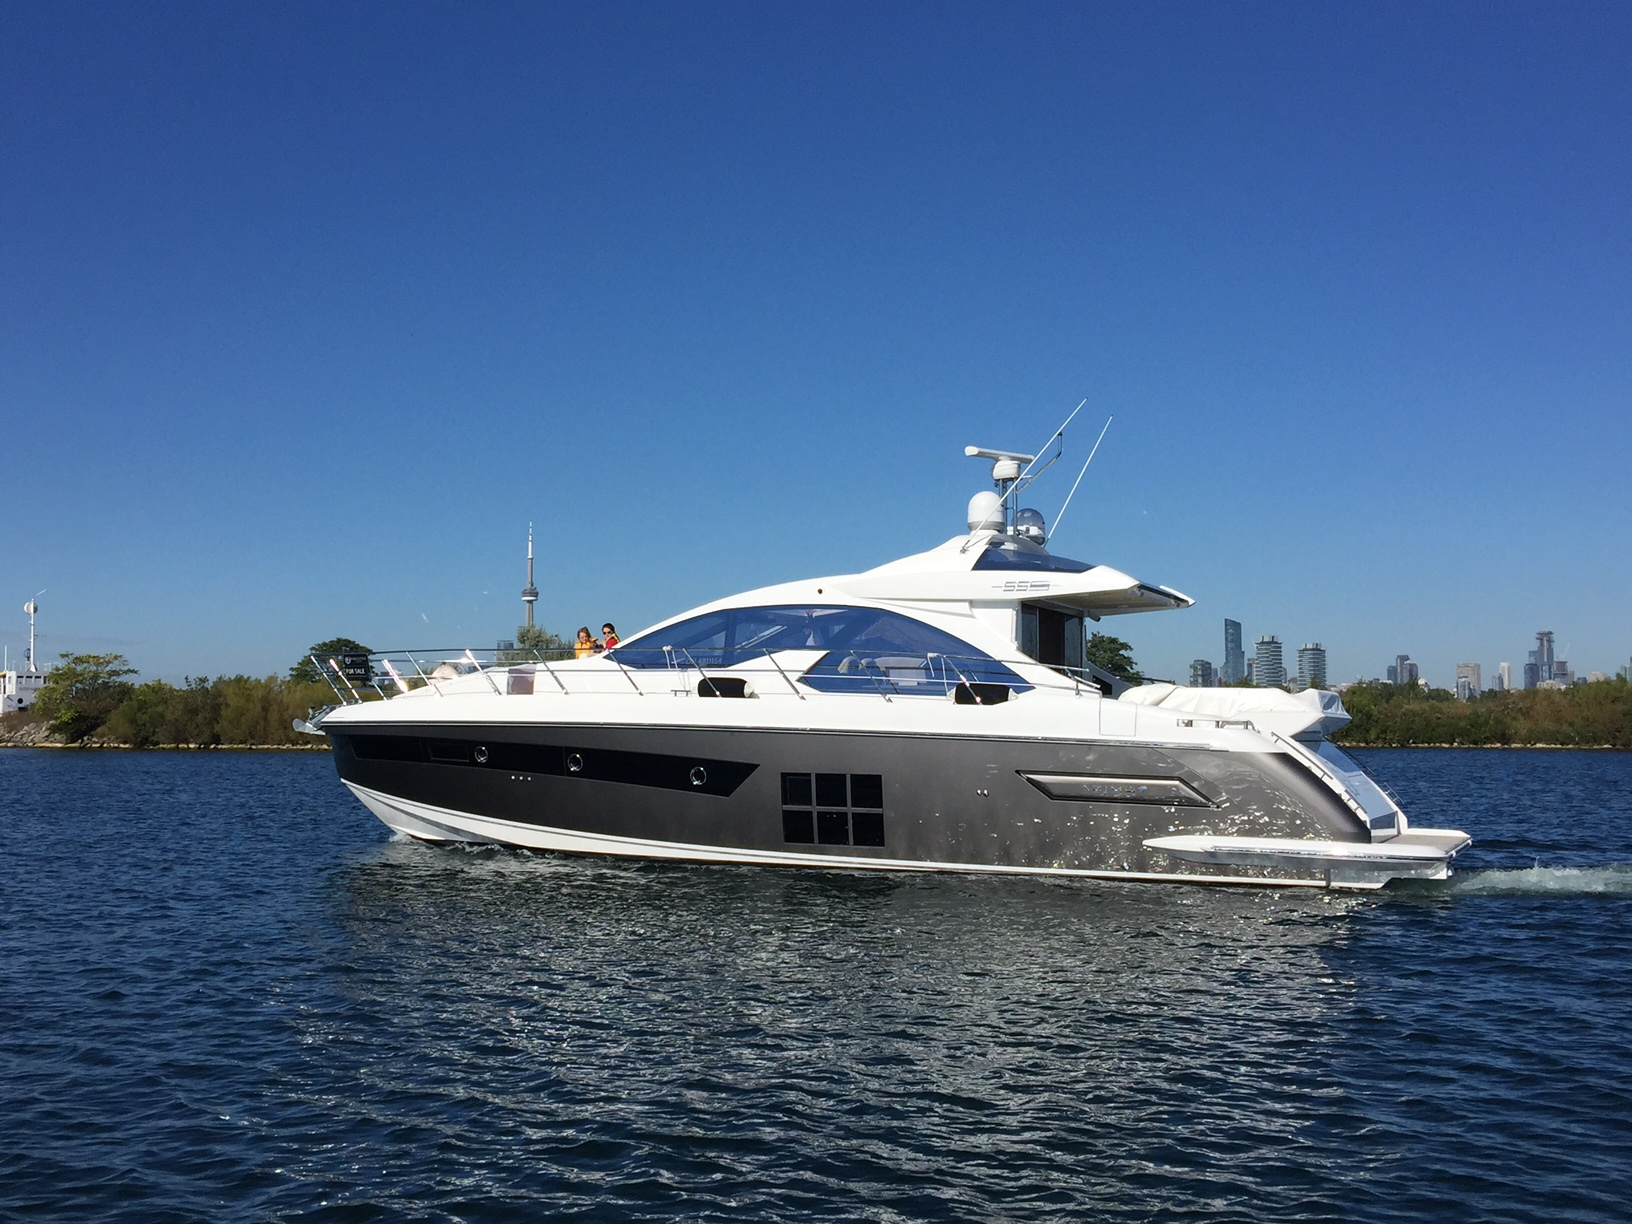 Azimut 55S 2016 Proprio Yacht Canada Boats For Sale Bateaux A Vendre Proprio Yacht